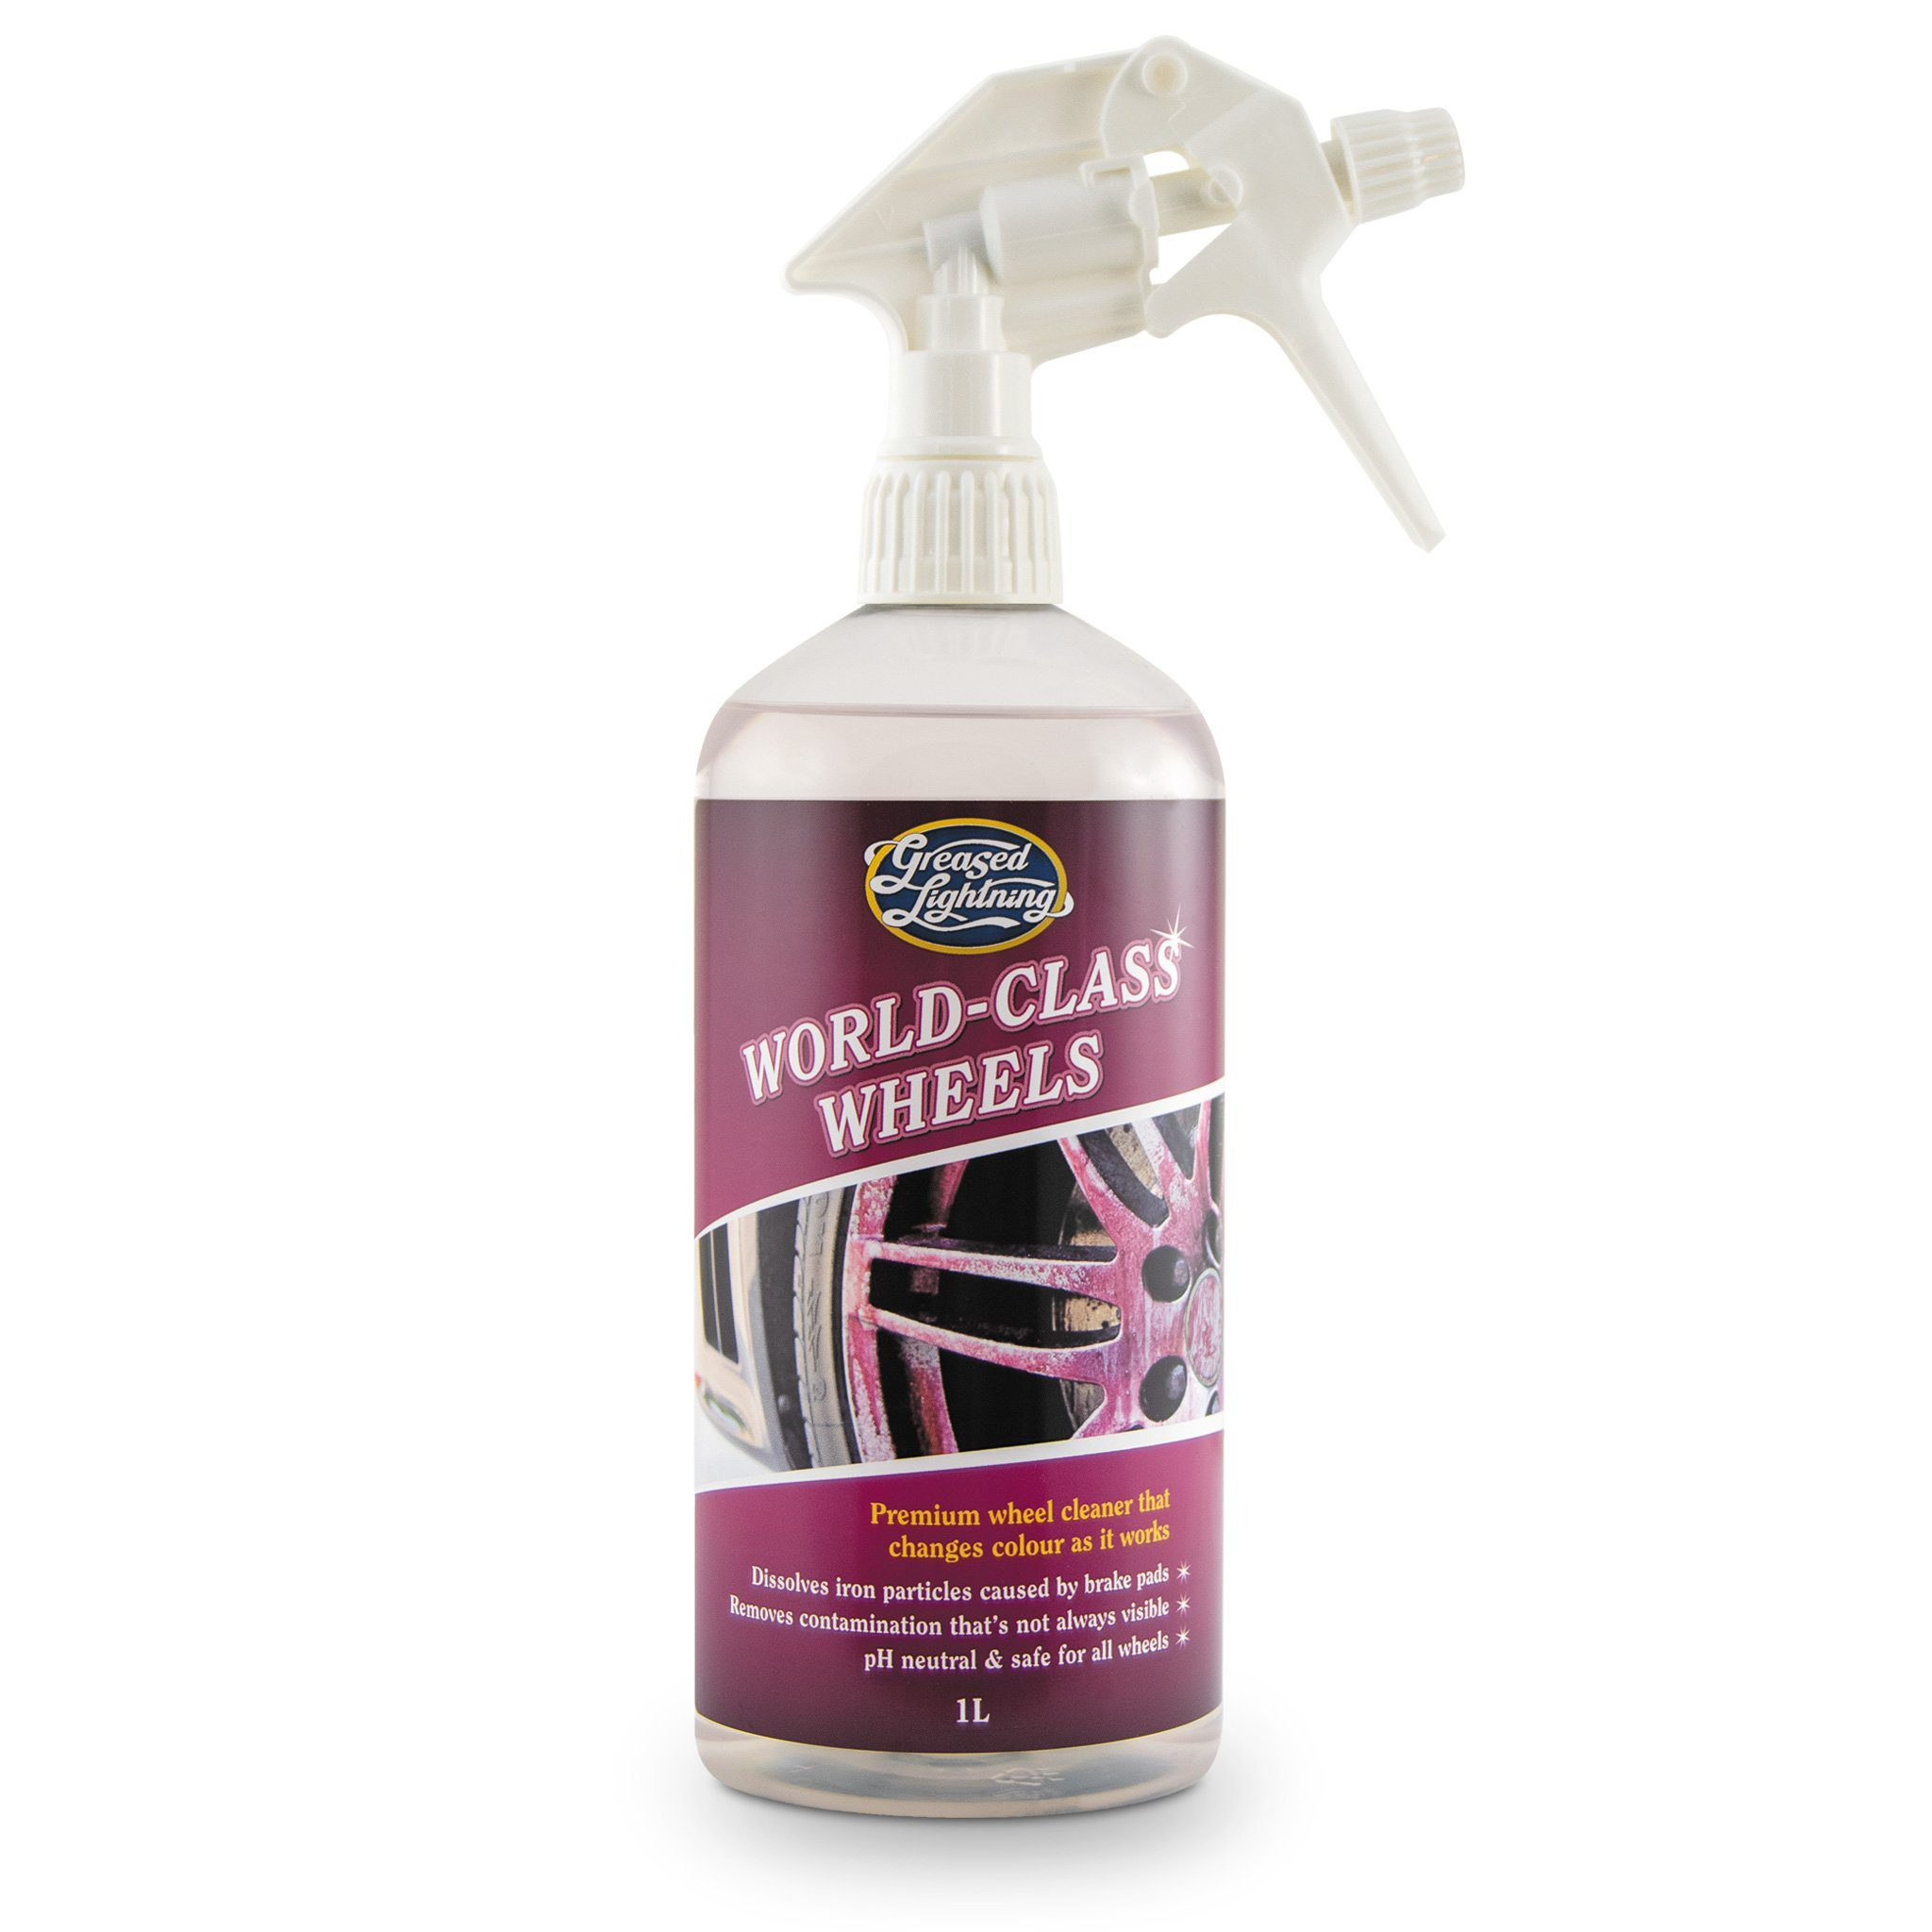 Greased Lightening World Class Wheels - Premium Wheel Cleaner